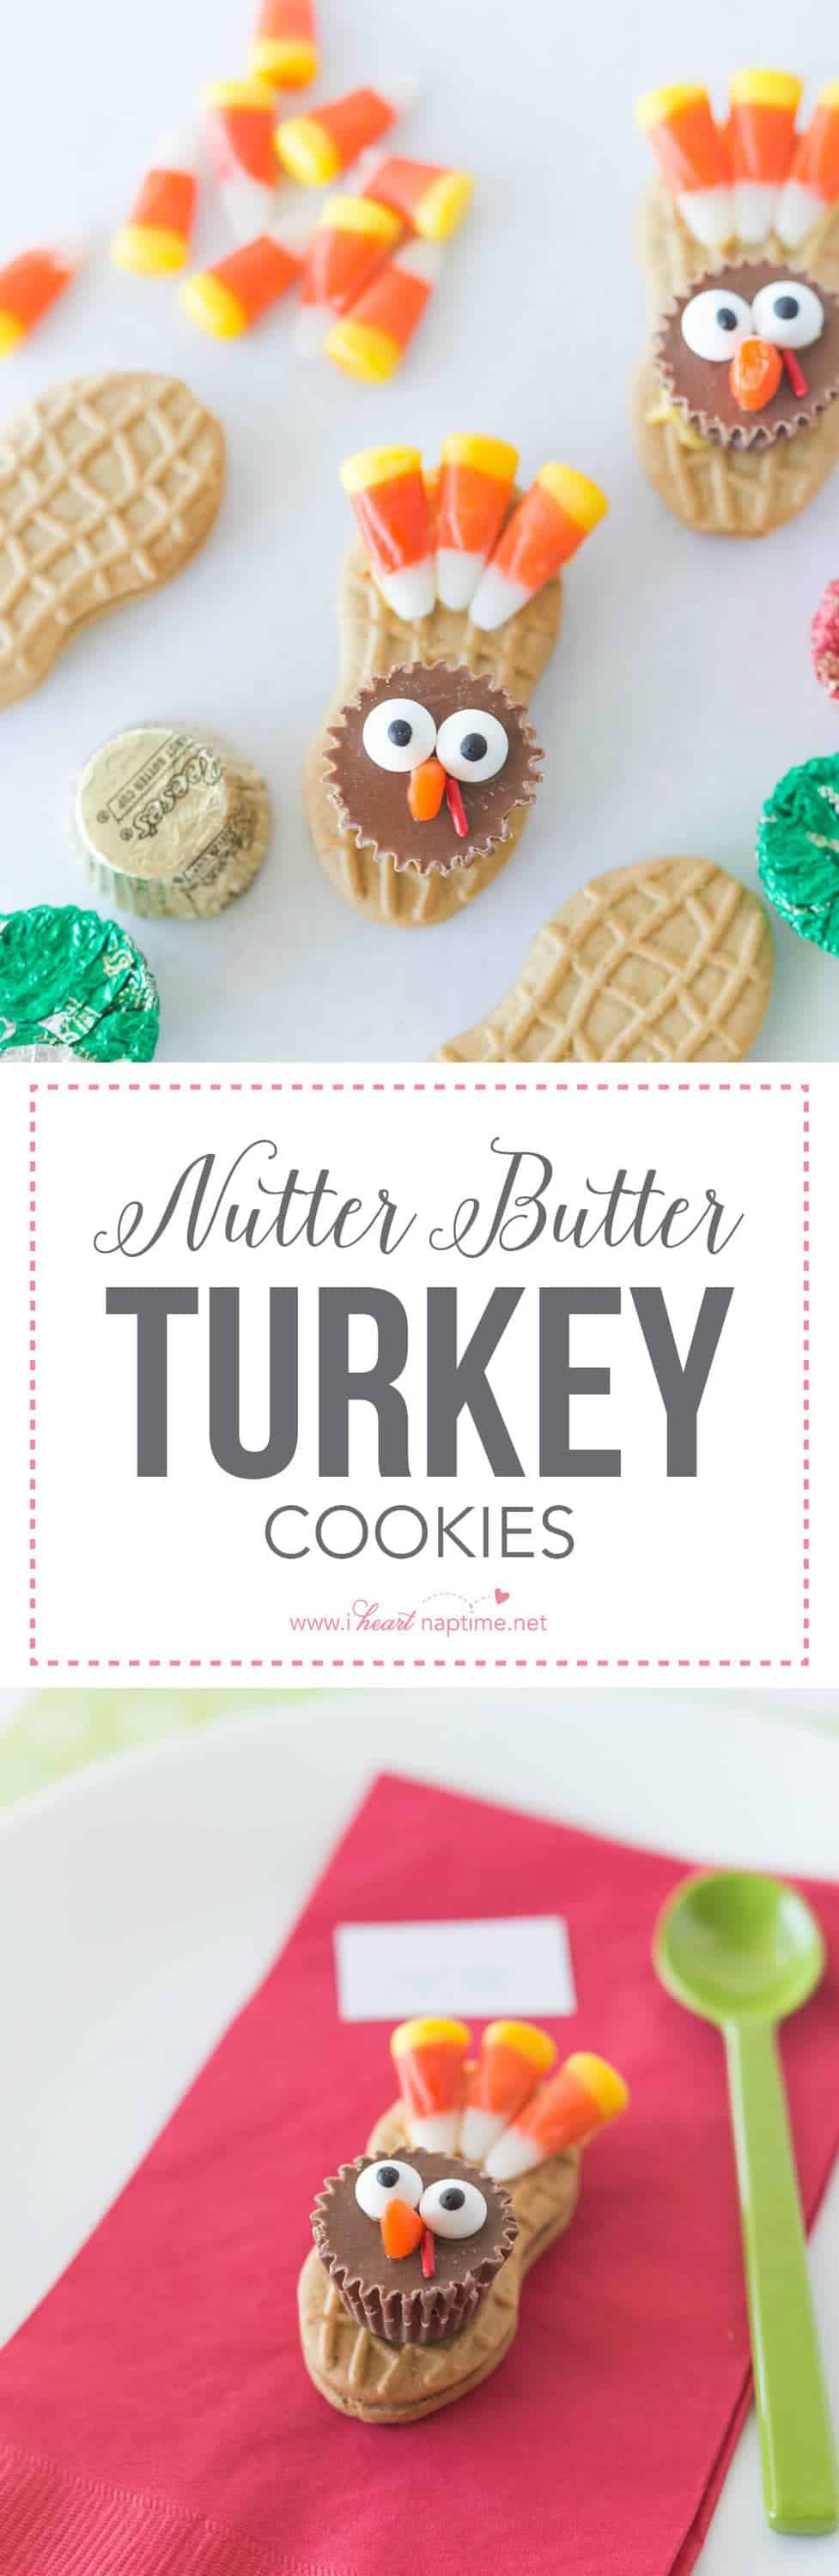 Nutter Butter Turkey Cookies ... a fun and festive treat for the kids! Not only can they help make these little gobbly friends, they can also use them as their special place setting.